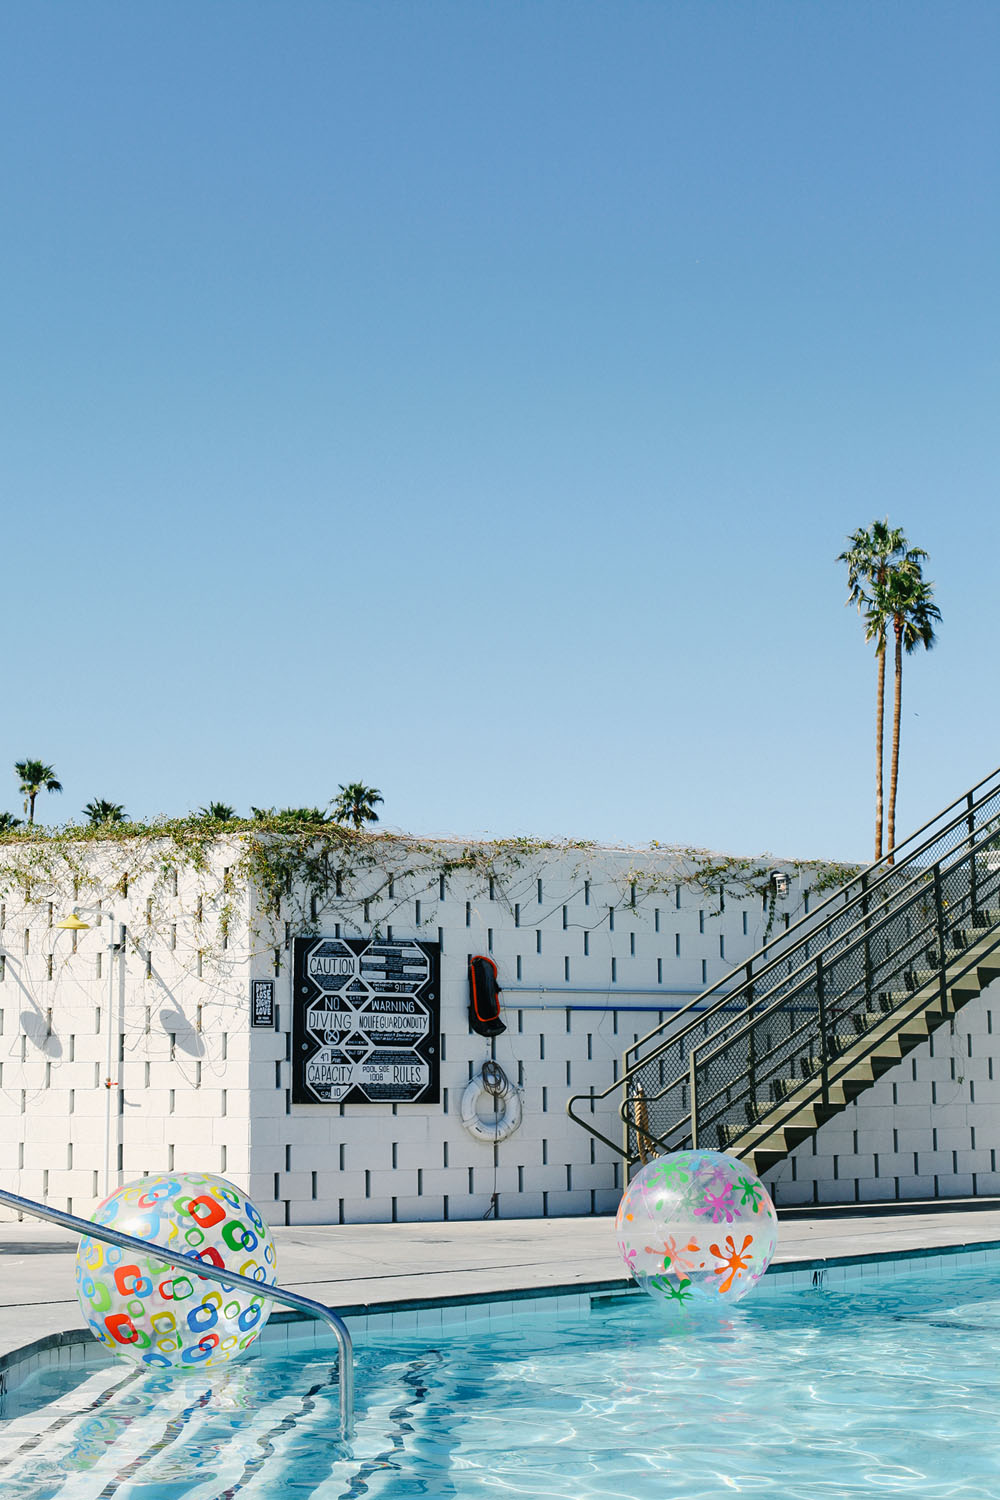 ace hotel palm springs | jessie webster